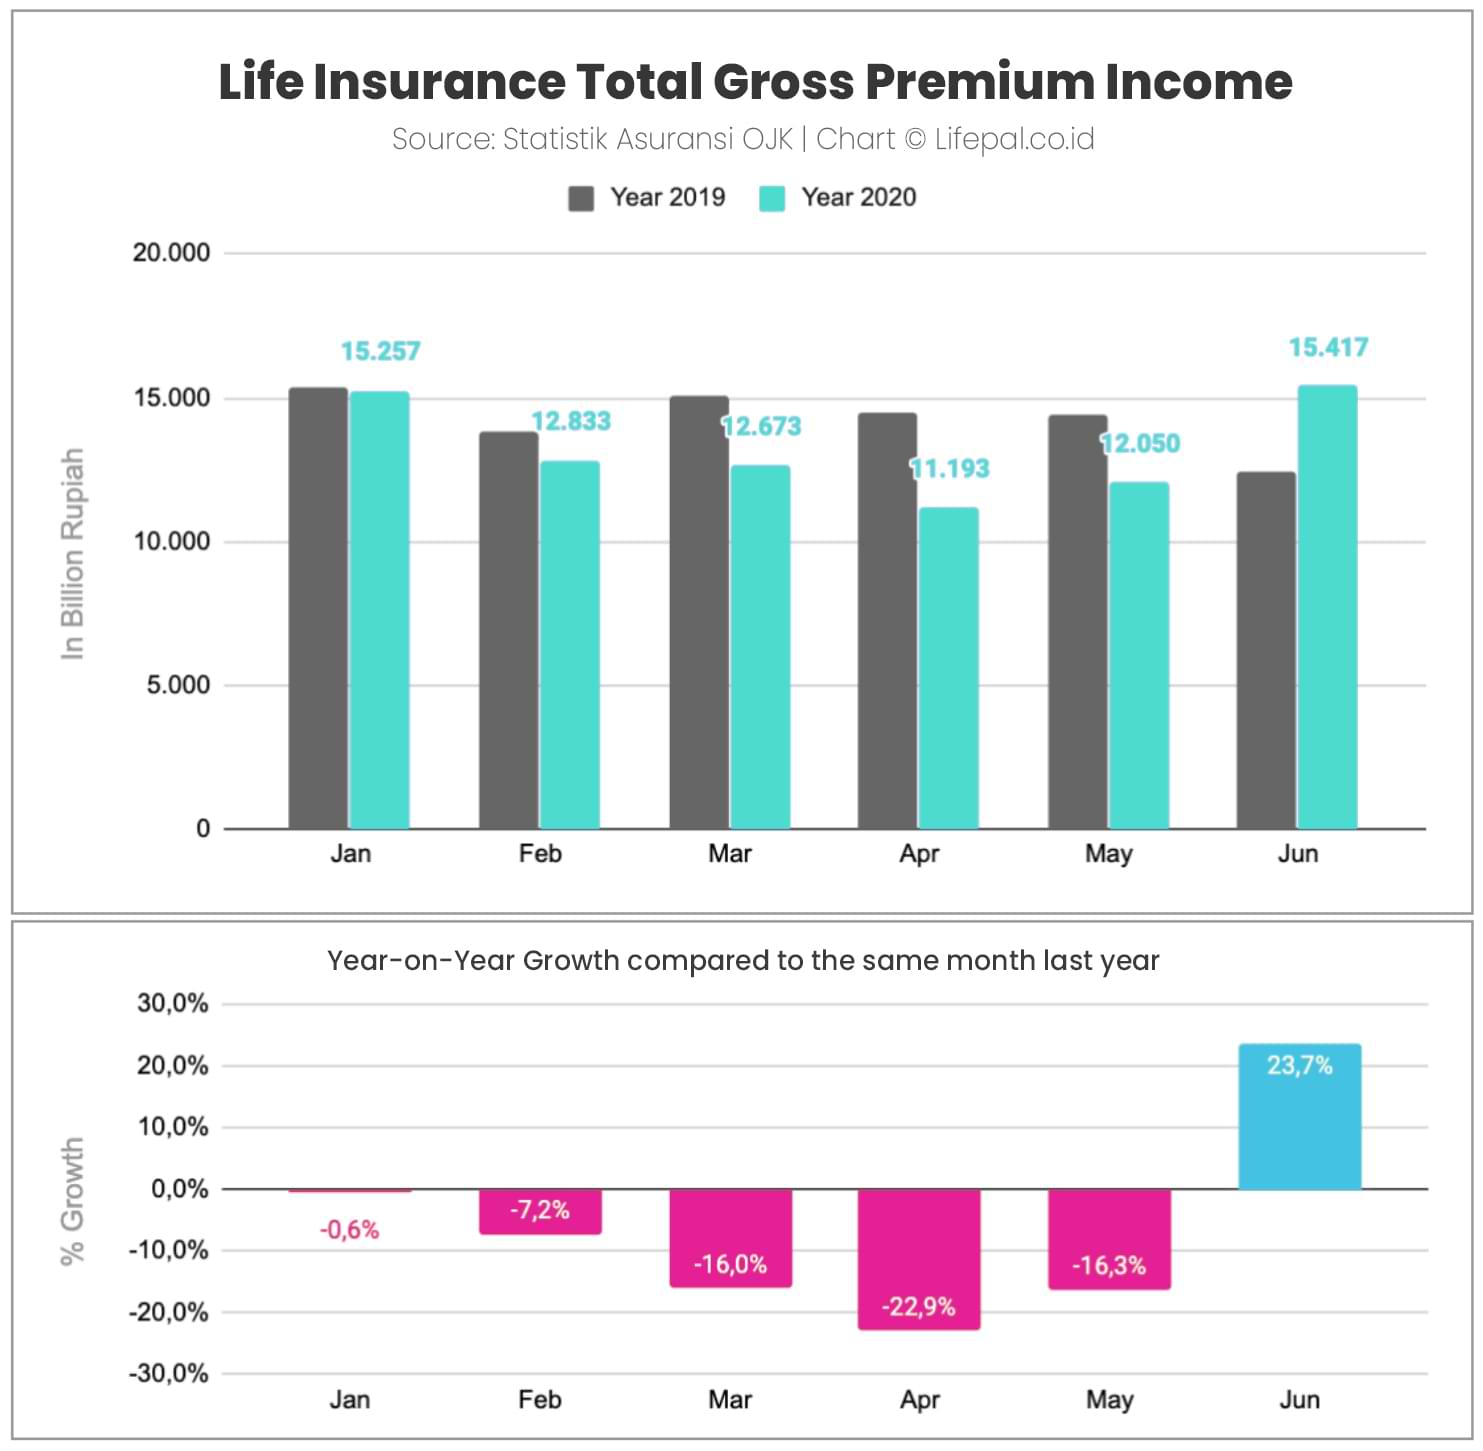 Life Insurance Total Gross Premium Income